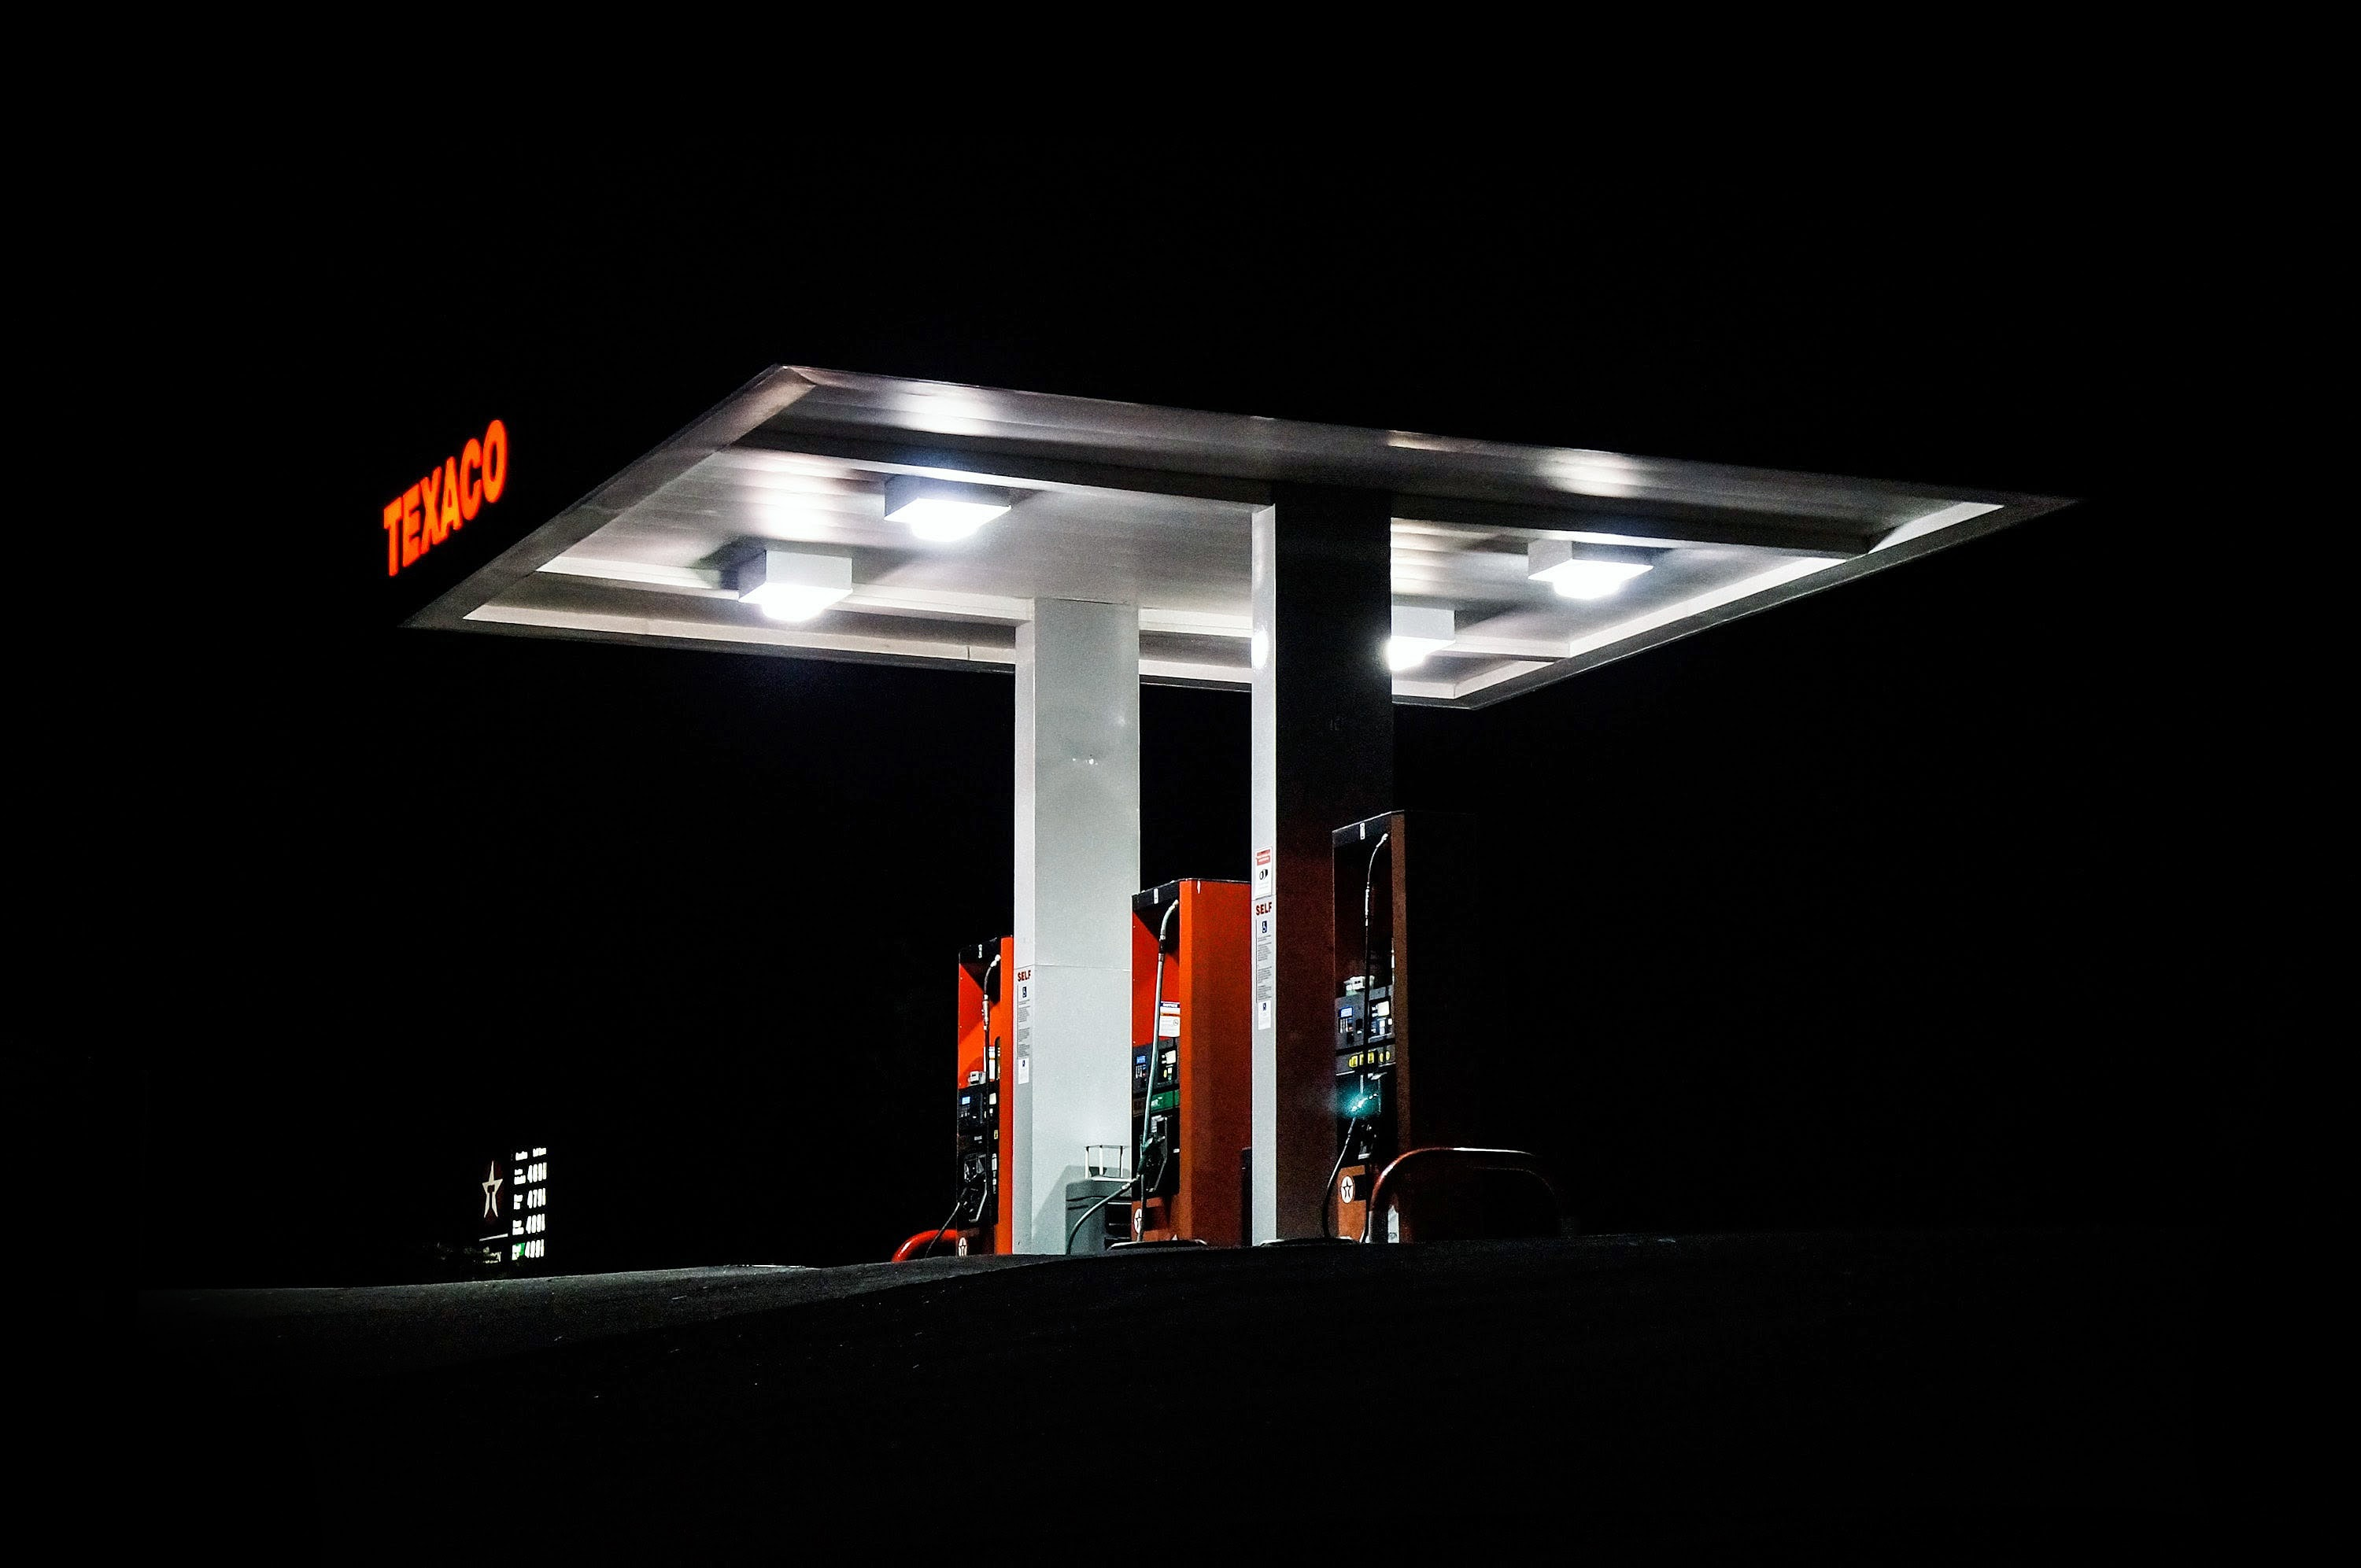 Texaco gas station at night